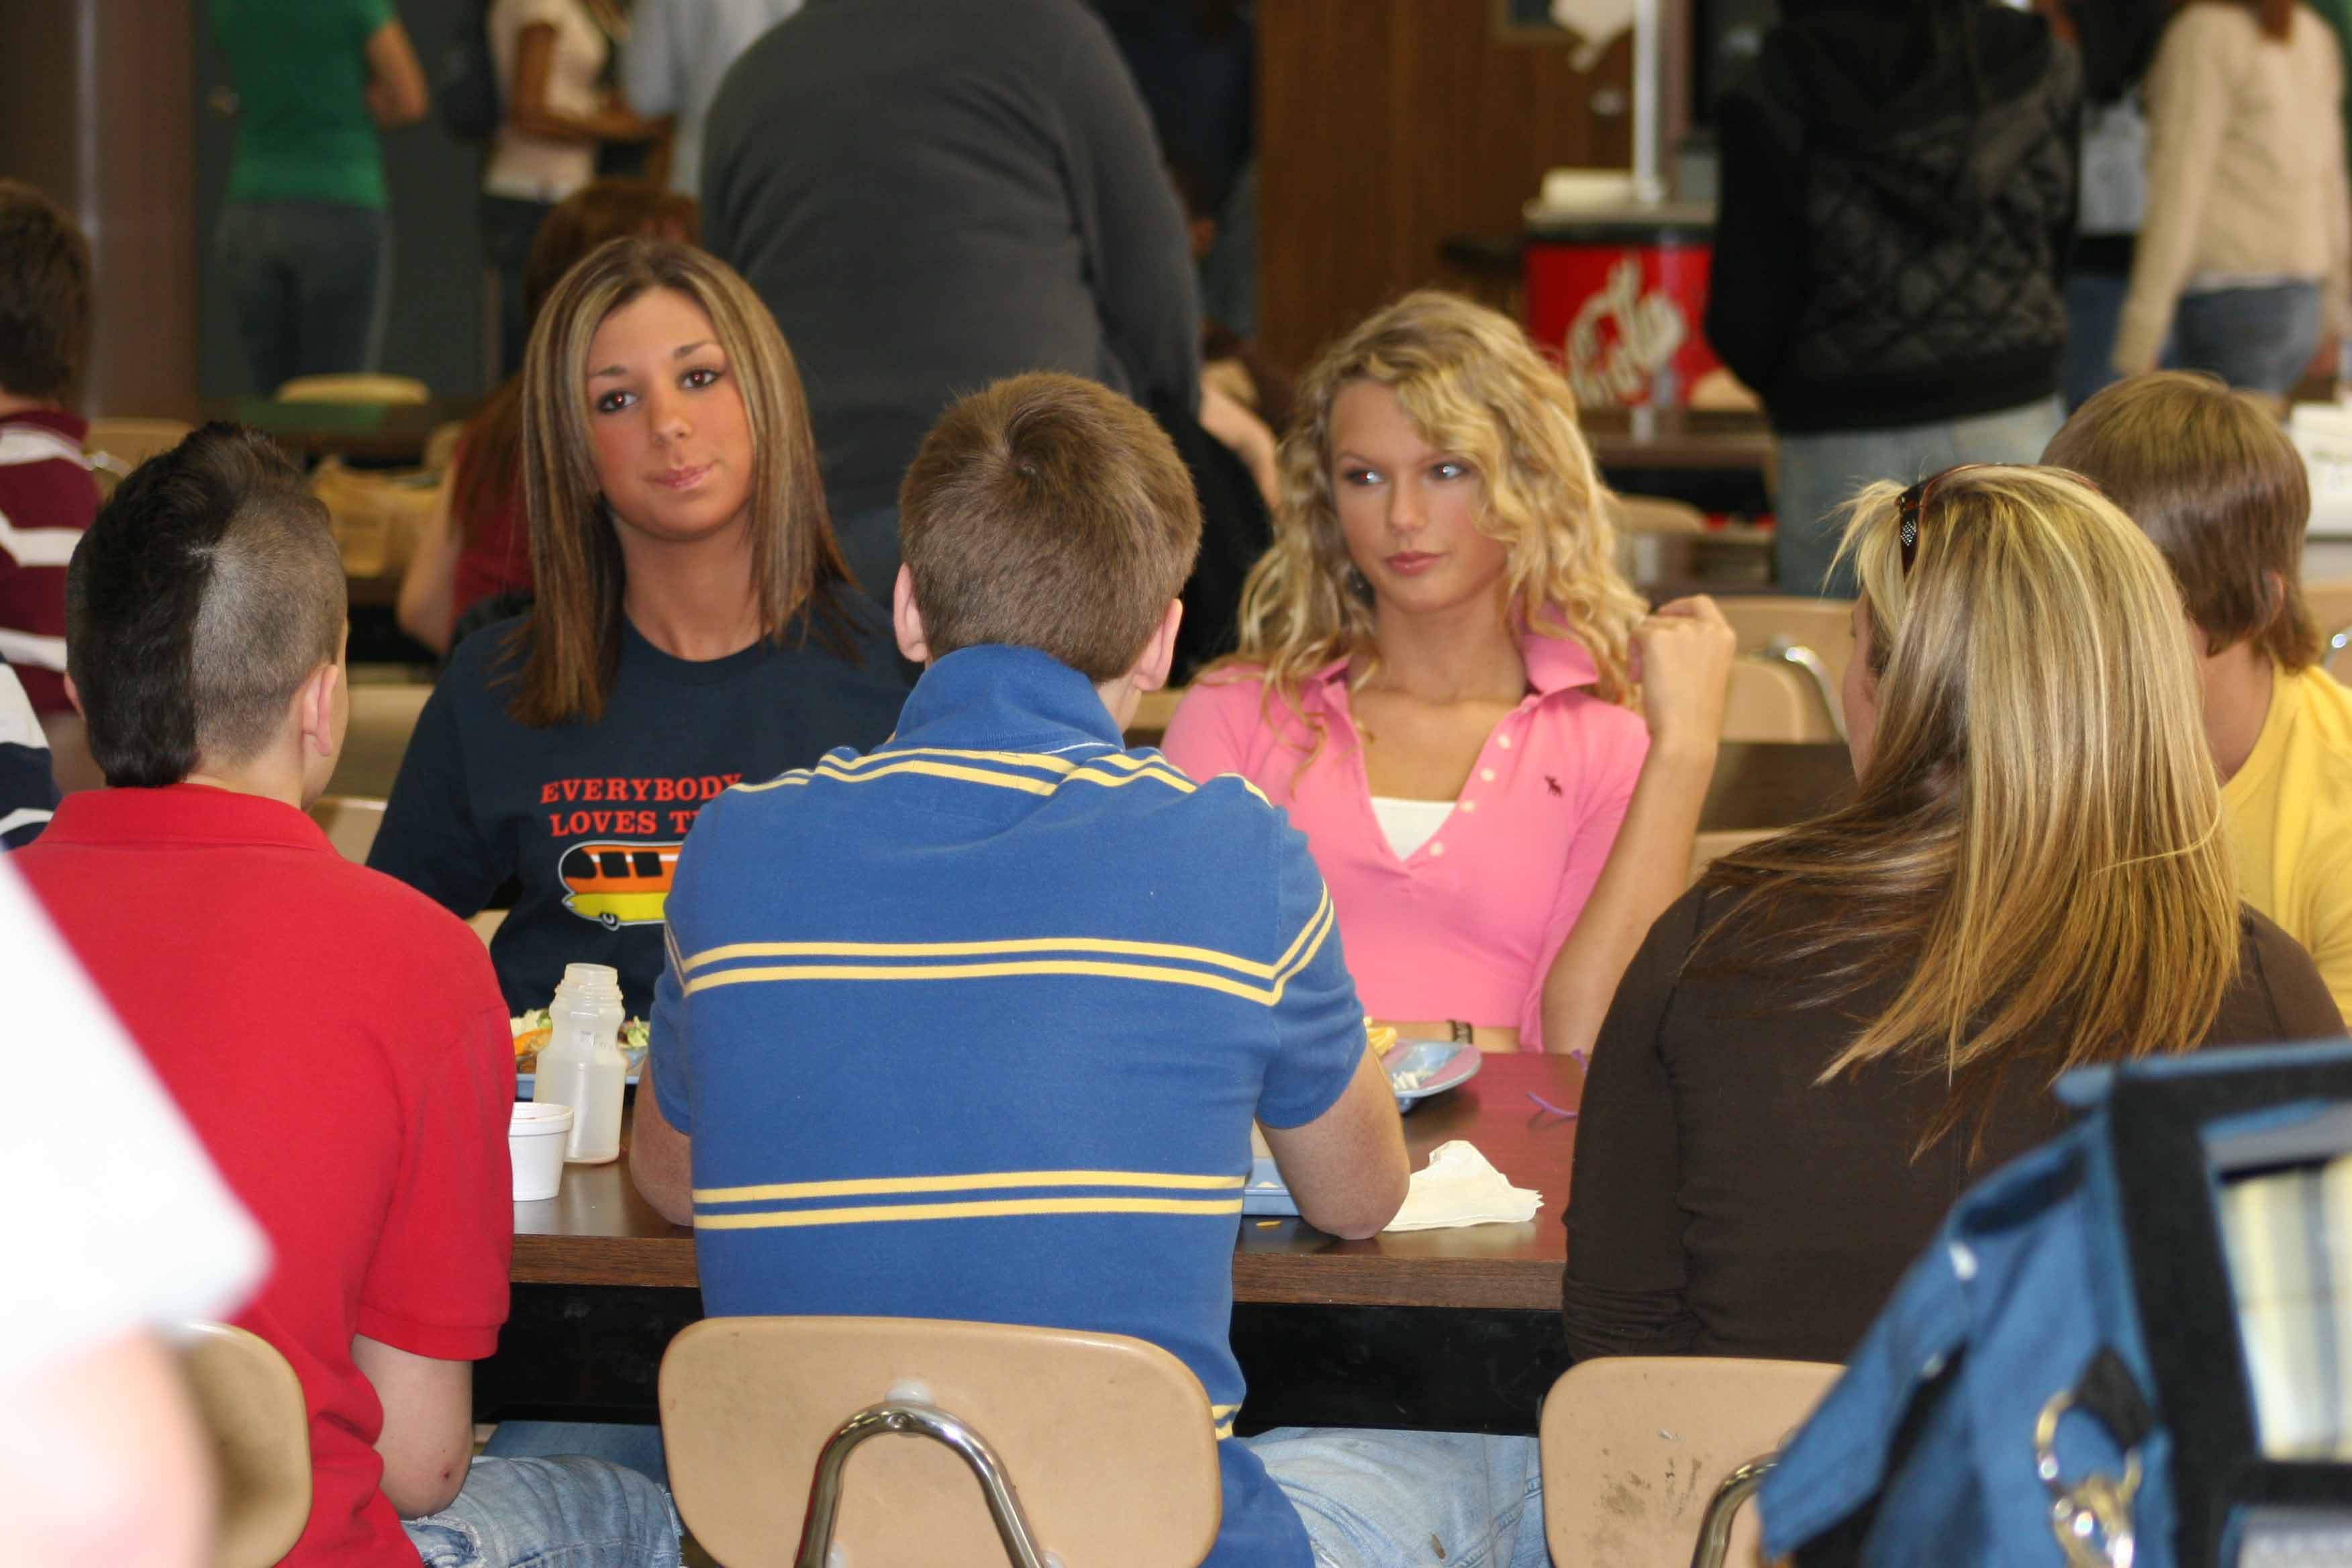 Taylor at lunch with her friends